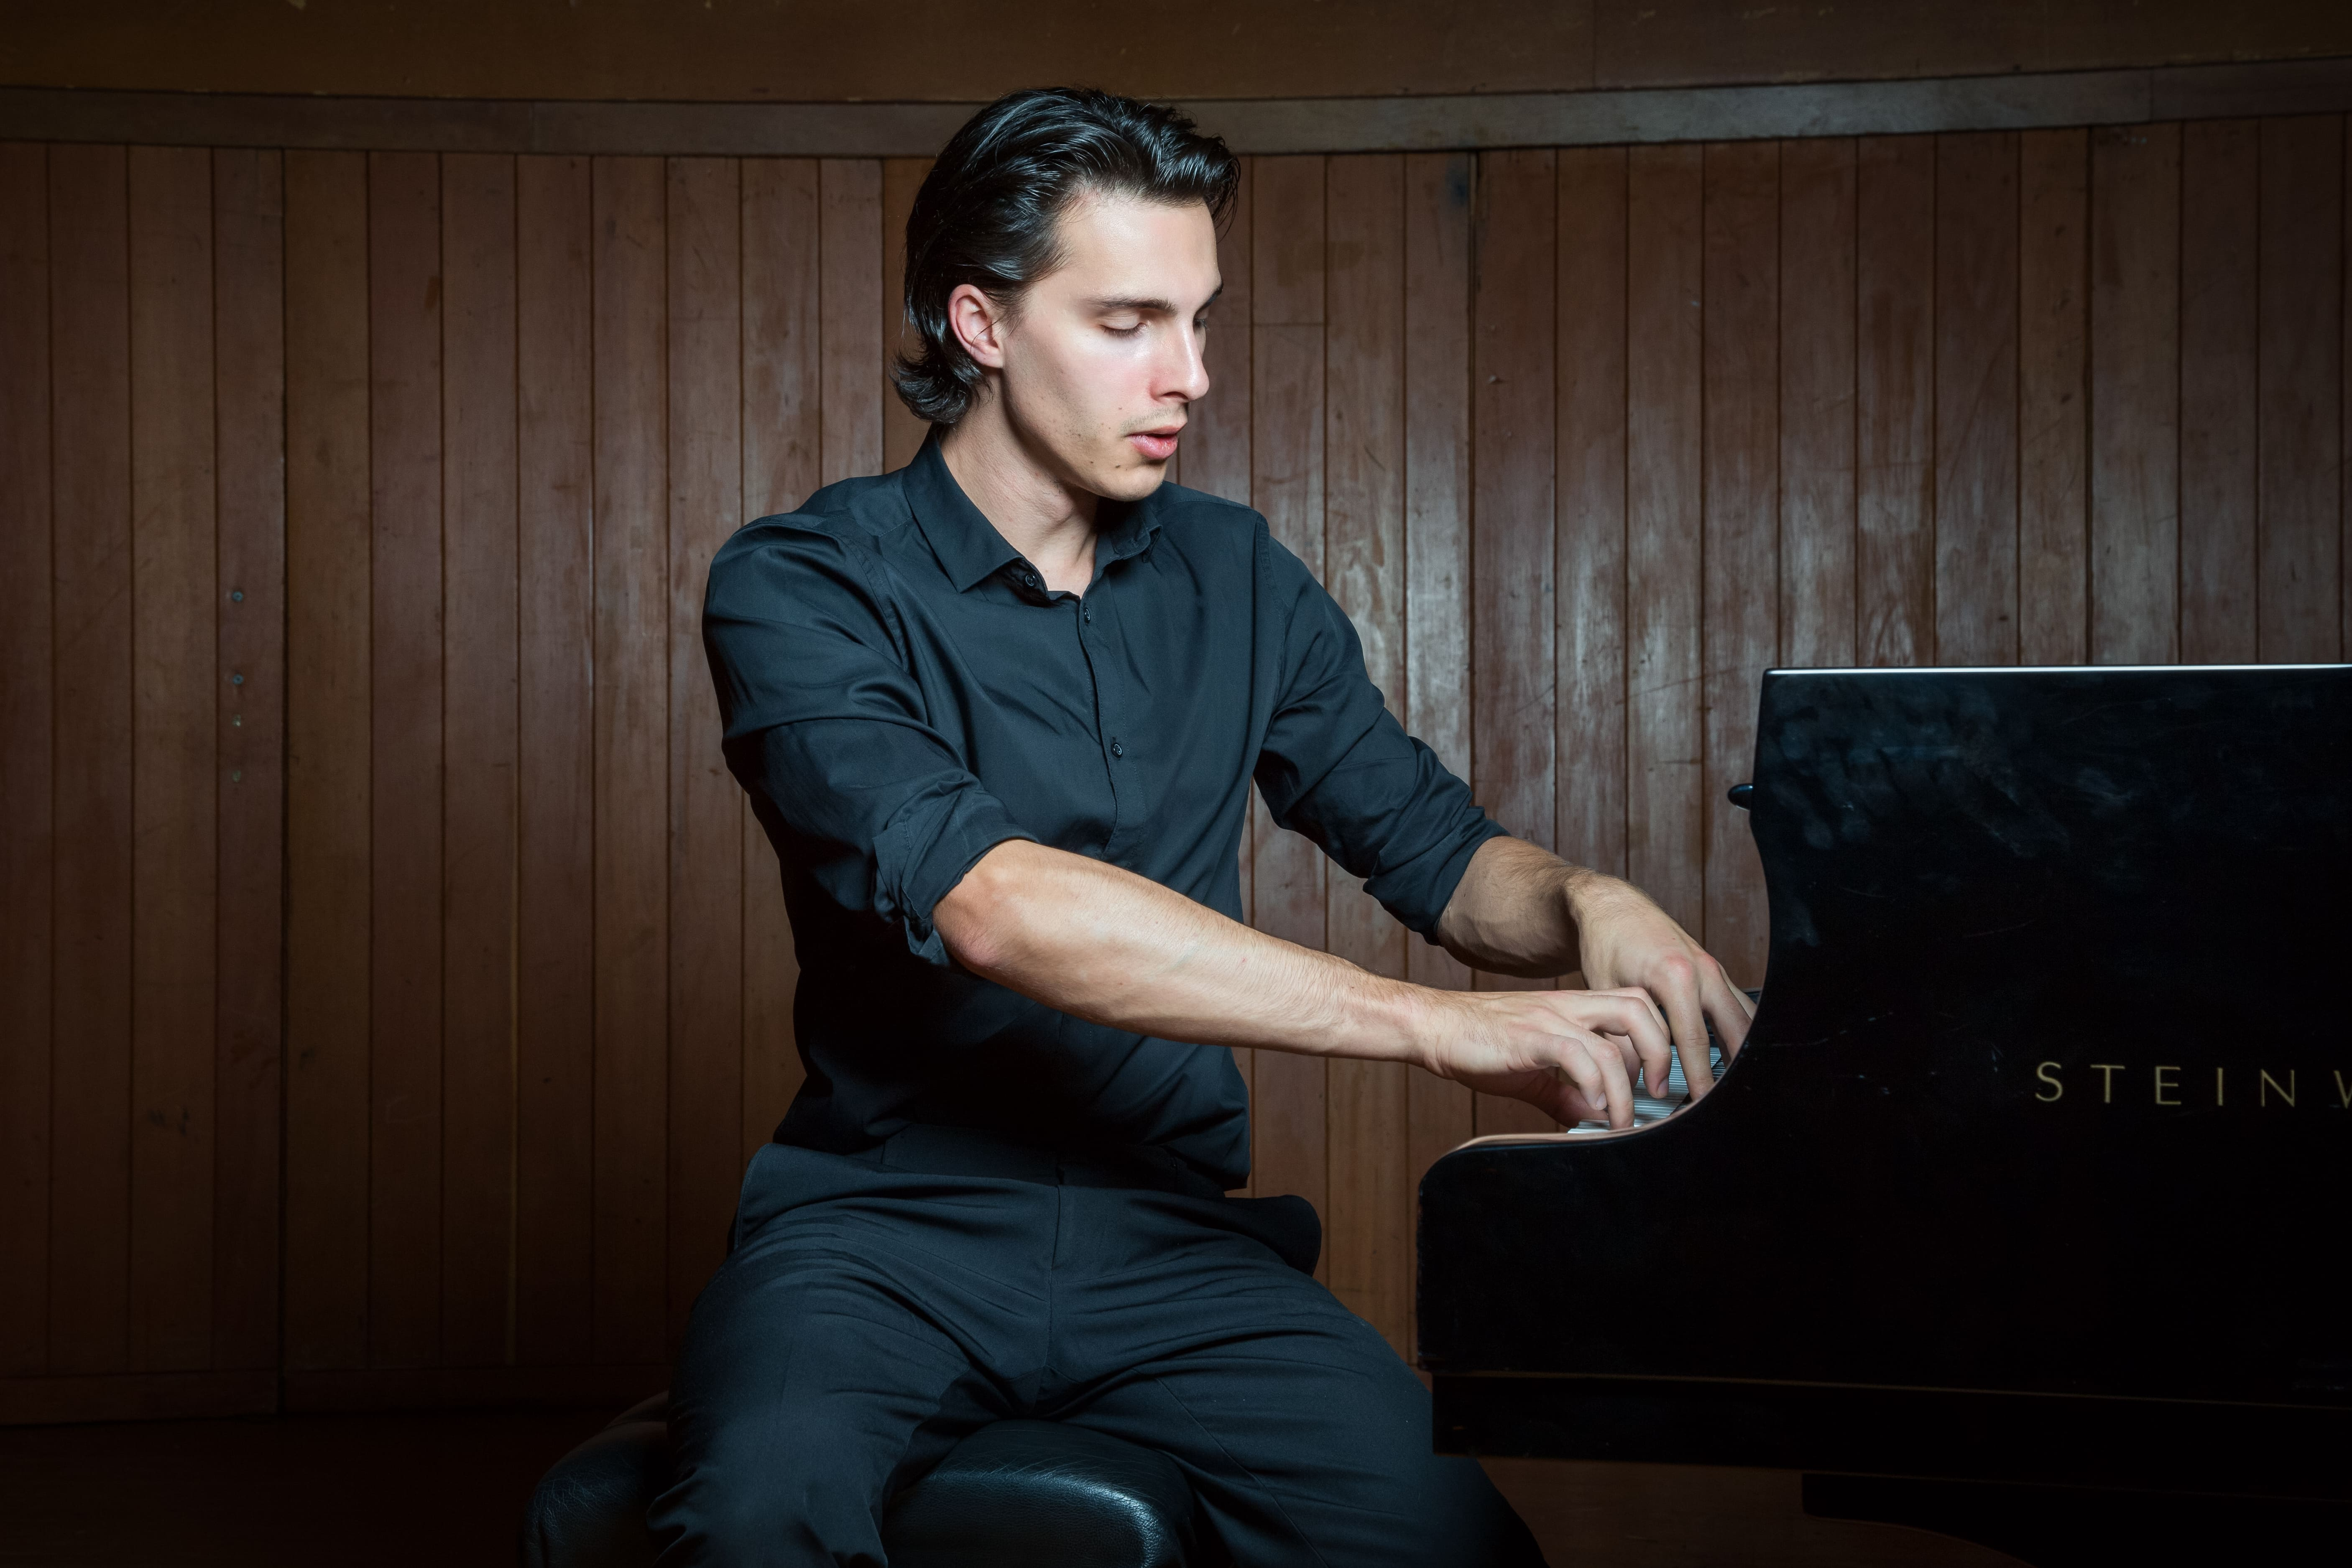 Composer & pianist from South Africa Liam Pitcher sitting at a Steinway & Sons grand piano at the Baxter Theater.